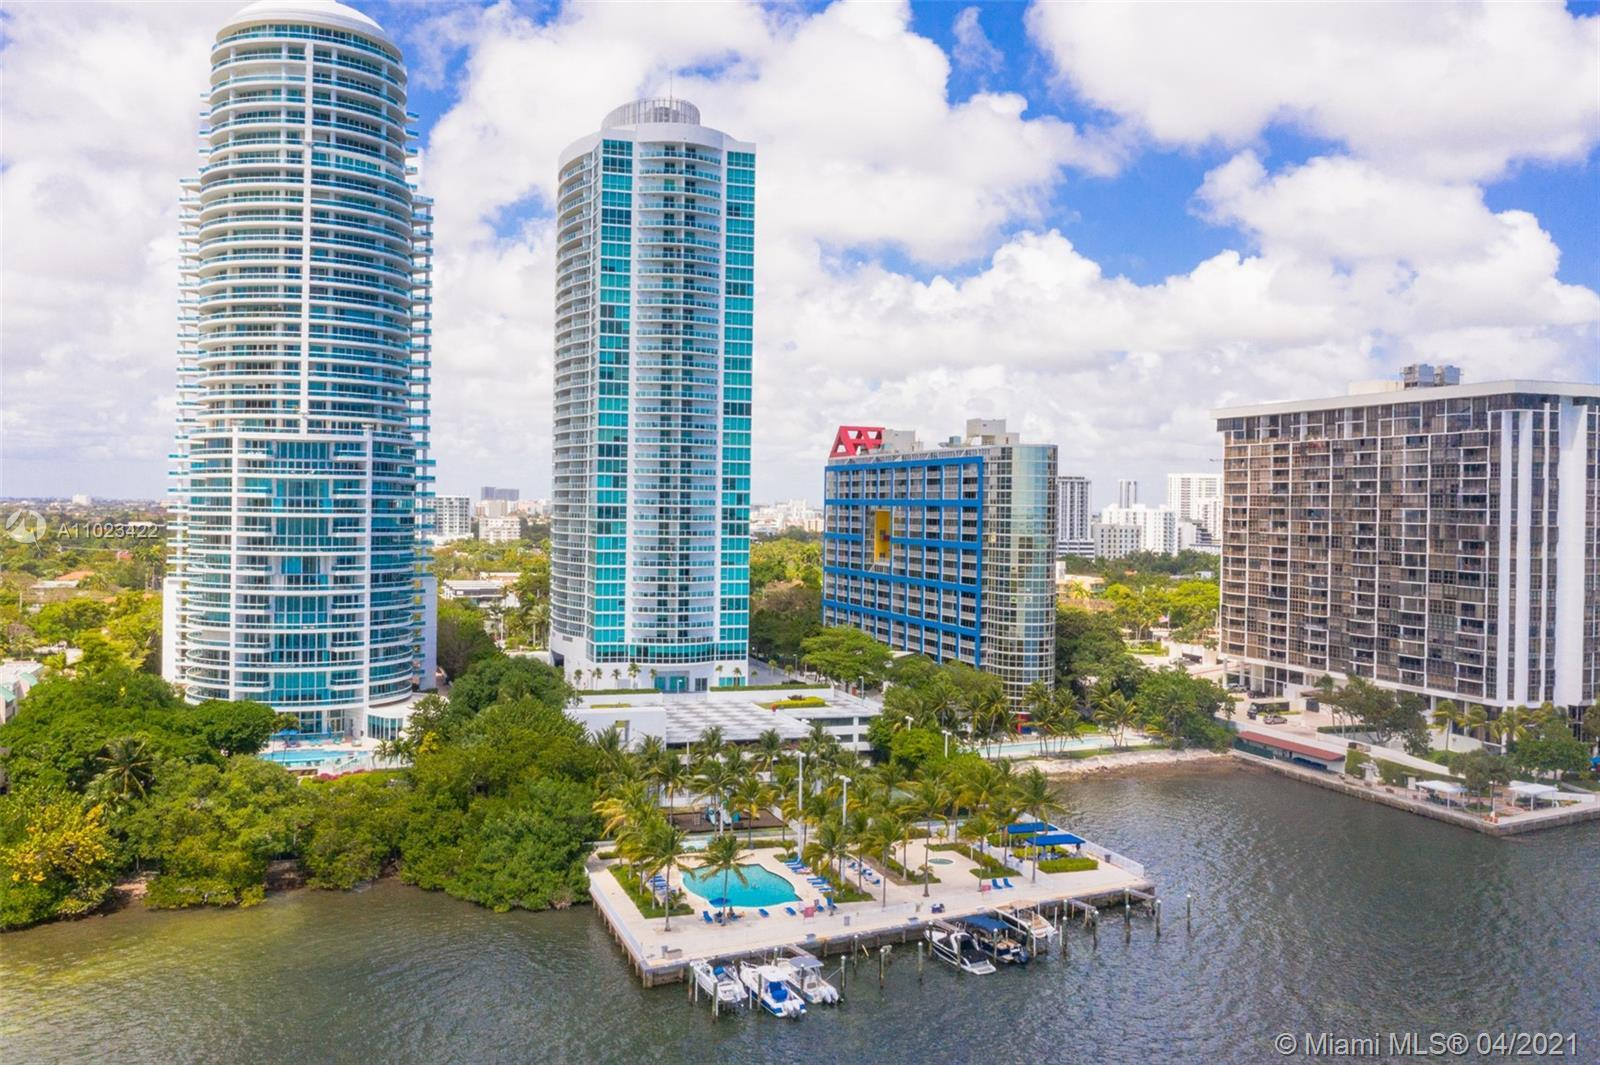 Immaculate maintained 2/2 Condo in Highly Desirable Skyline At Brickell. Move in ready with in unit